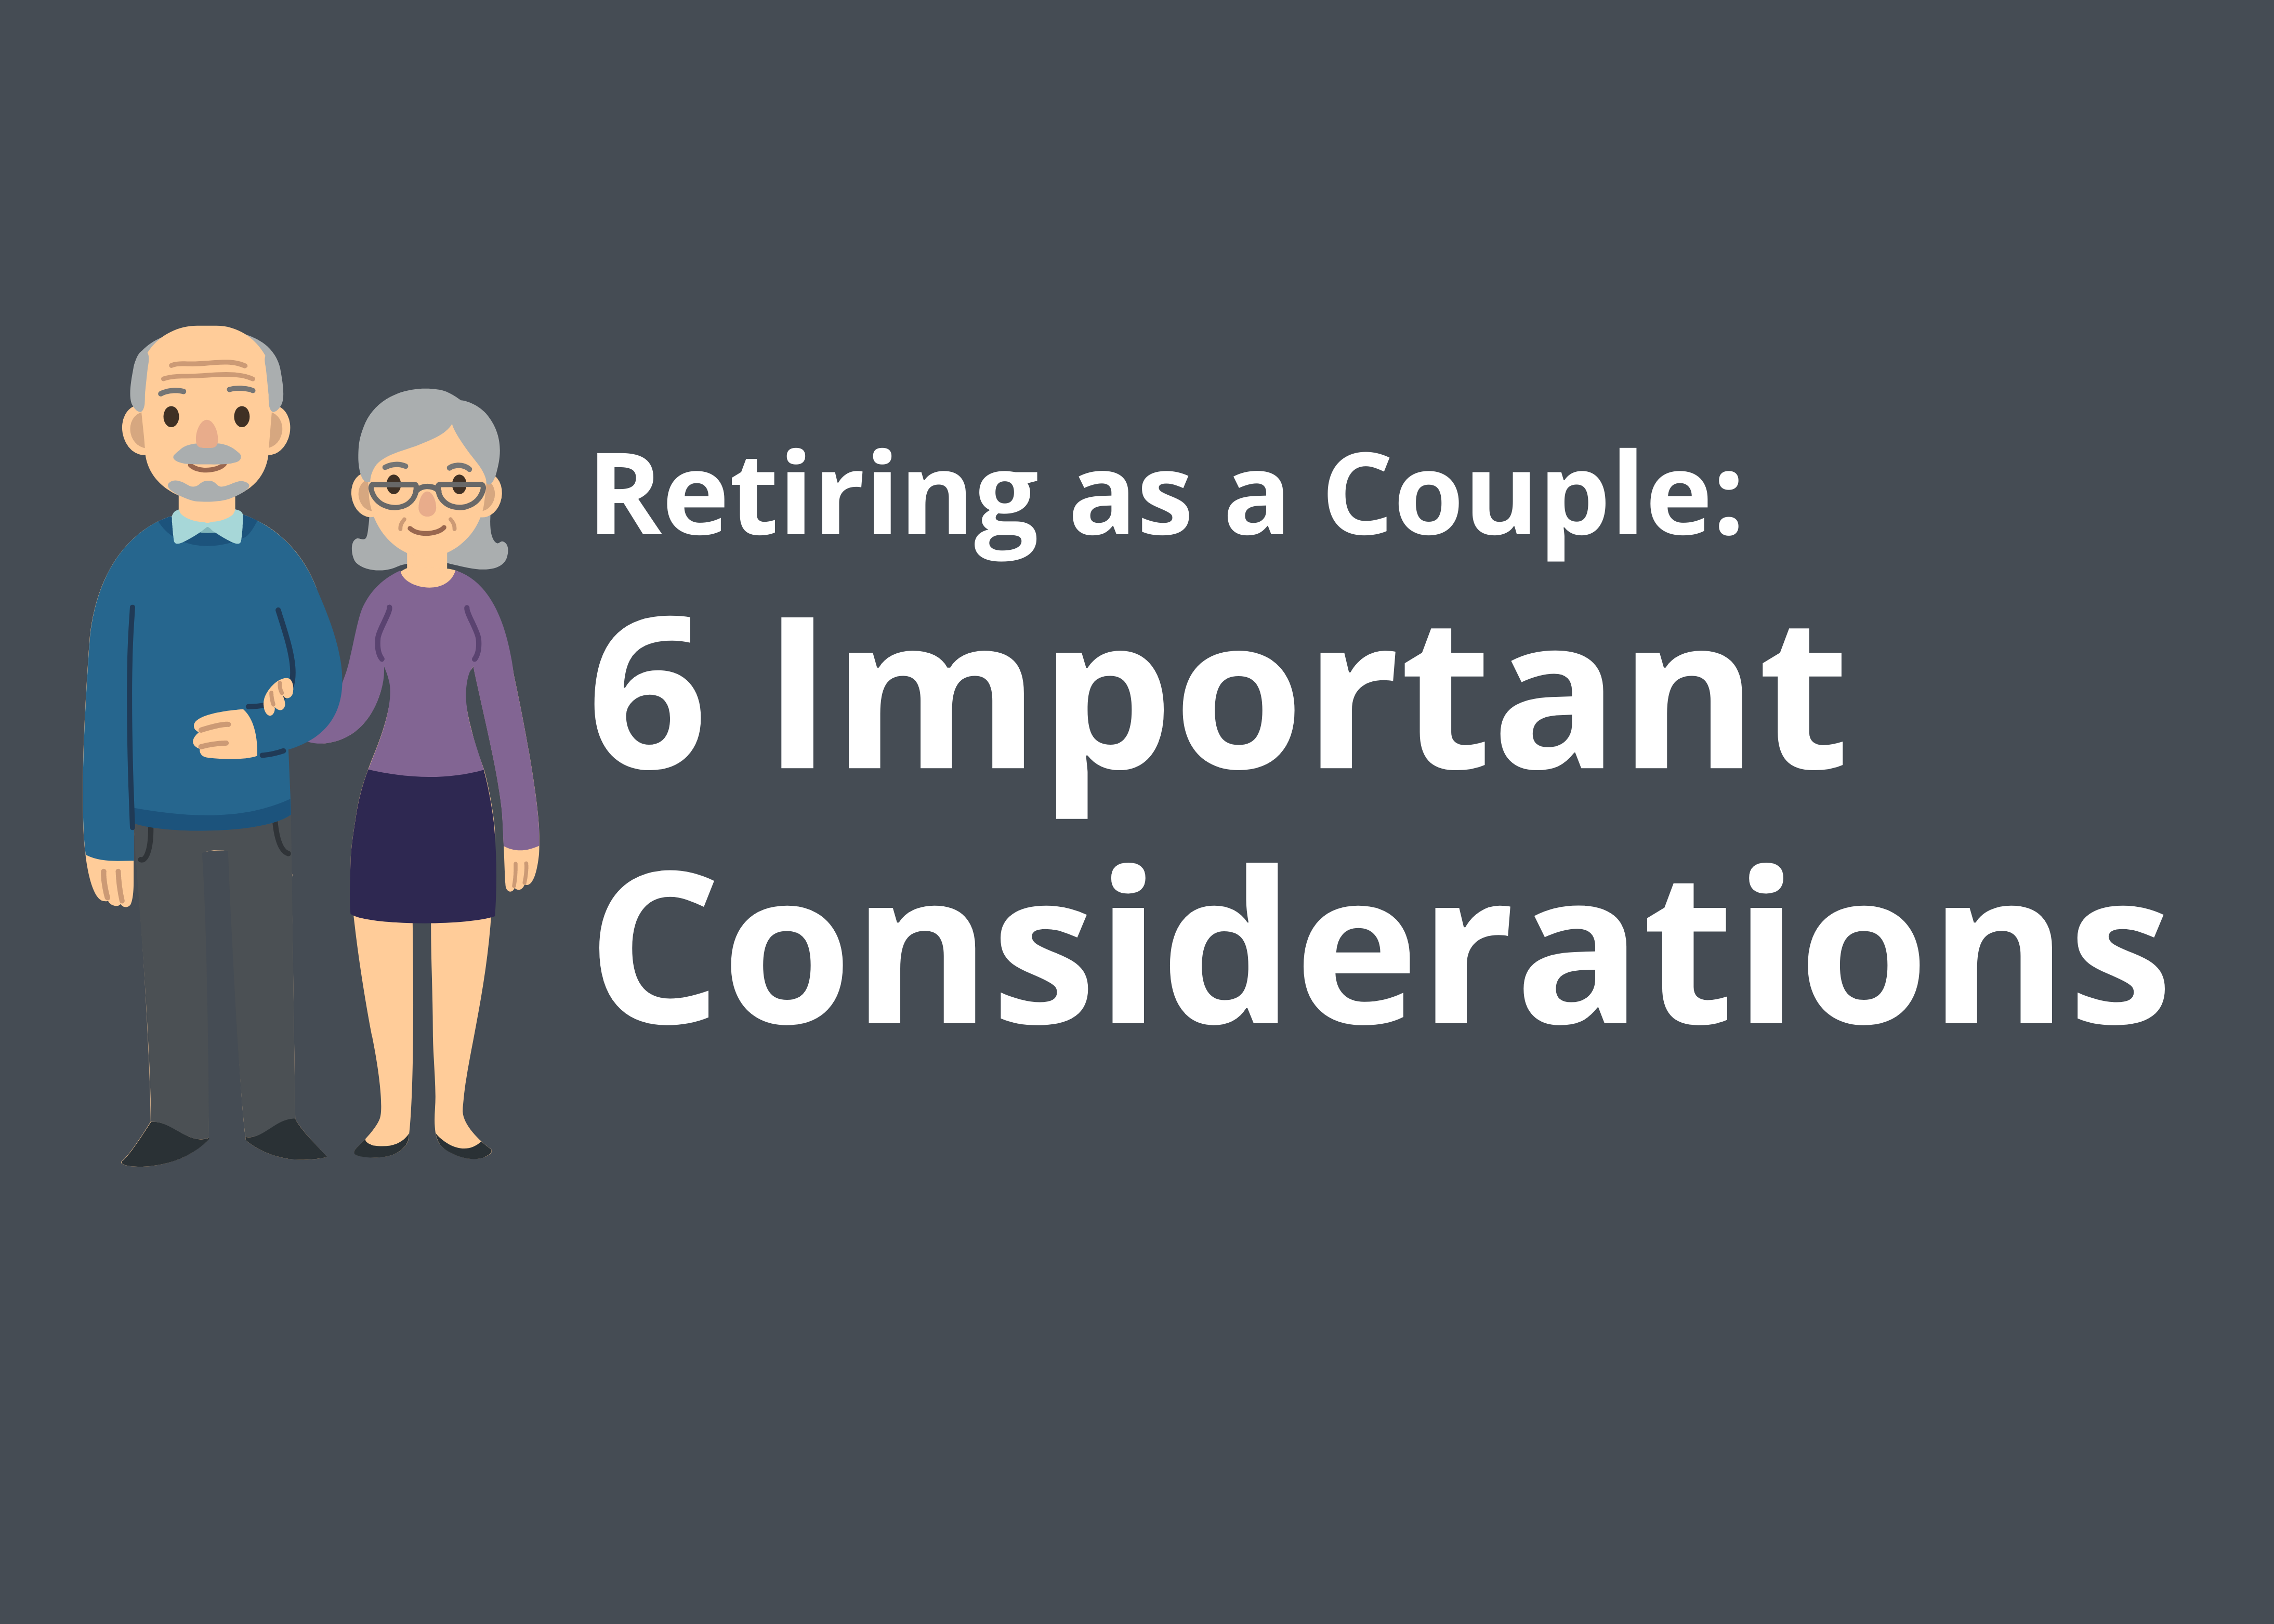 [Infographic] Are You Retiring Together as a Couple? 6 Important Considerations To Make Thumbnail